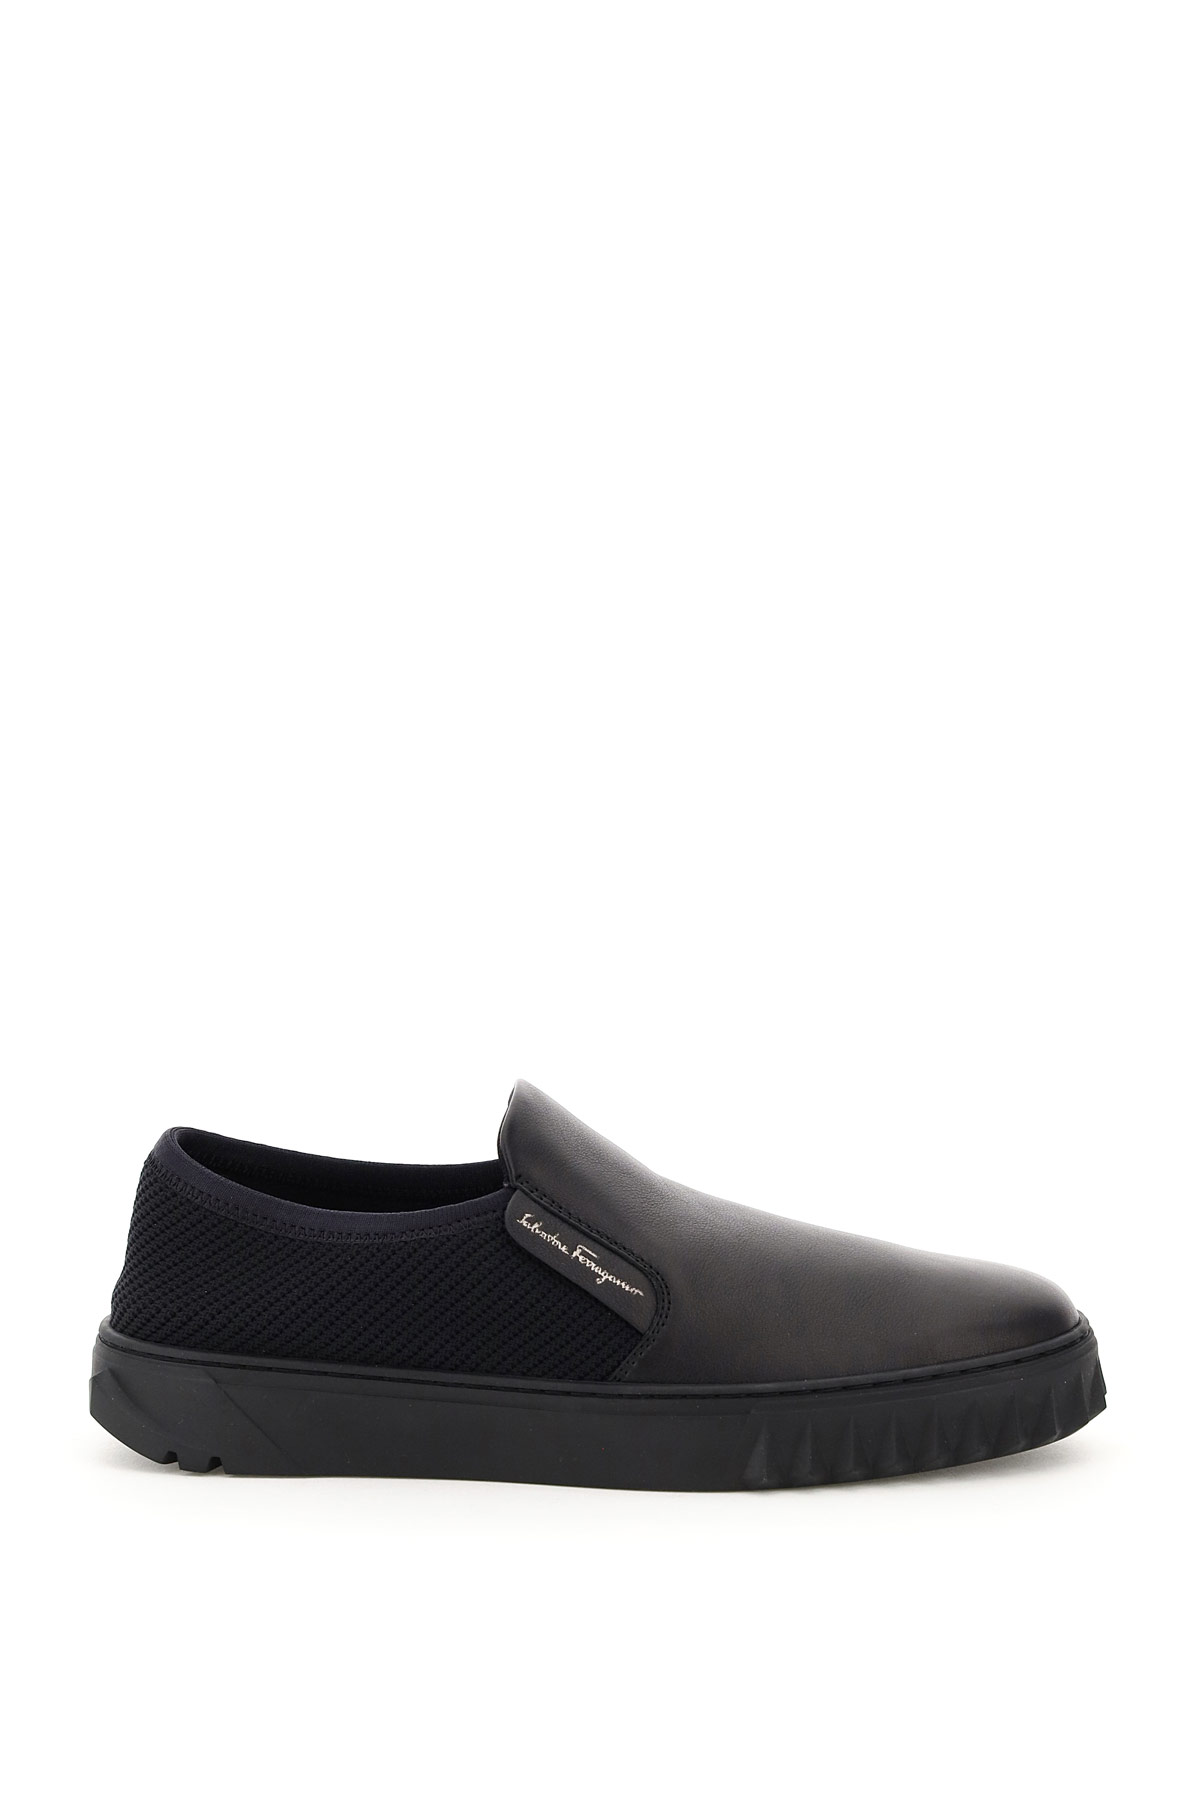 SALVATORE FERRAGAMO SLIP ON LEATHER AND MESH RAOUL 8 Black Leather, Technical